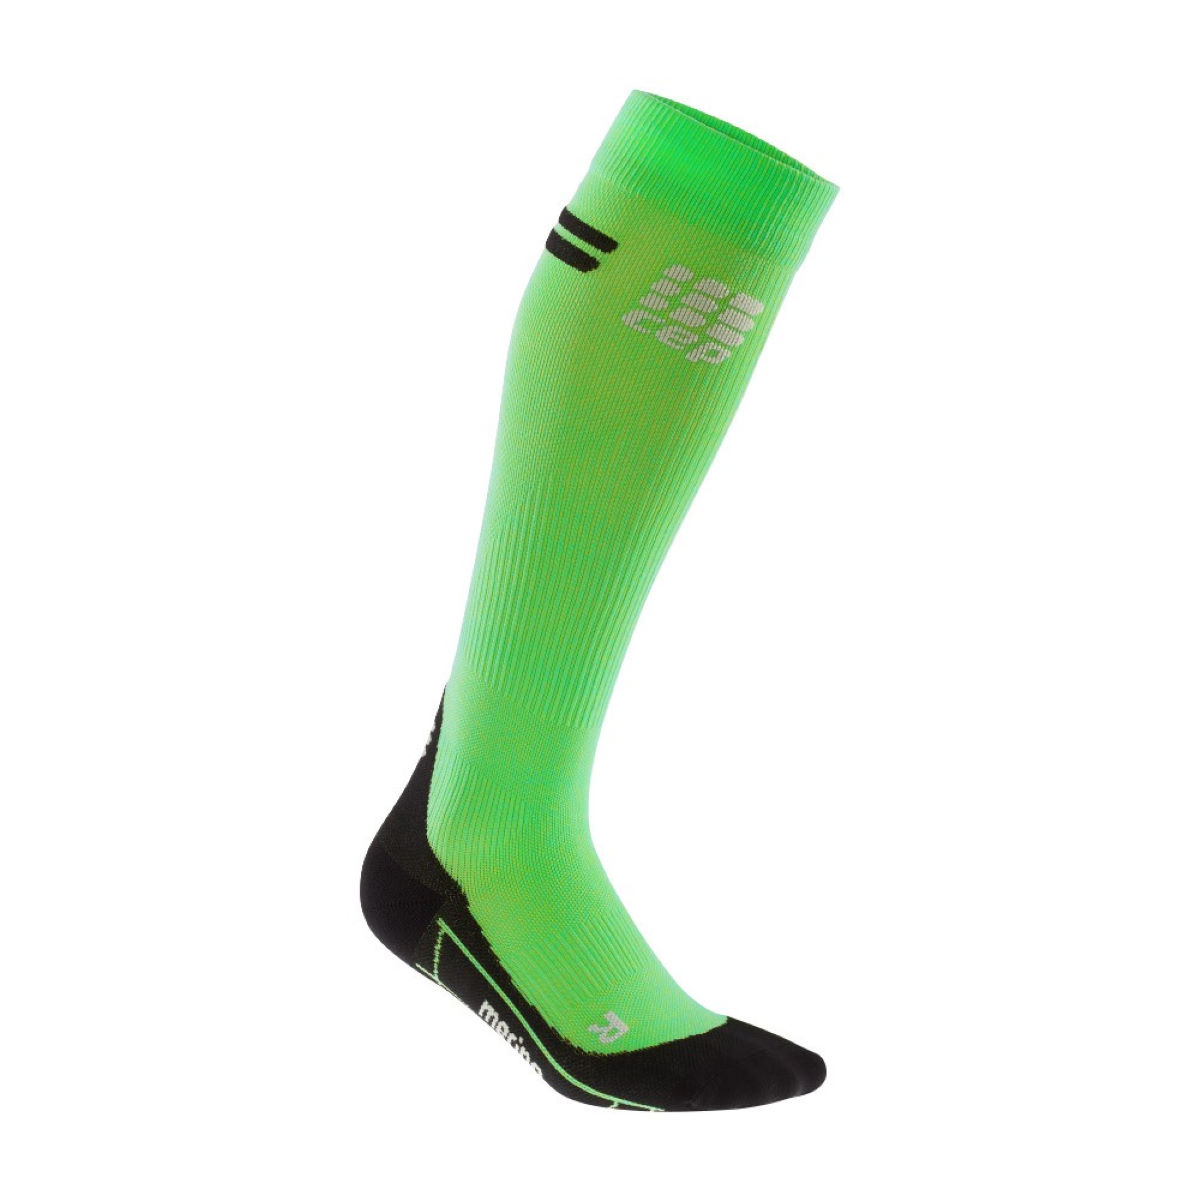 Image of Chaussettes de running à compression Femme CEP Merino - III